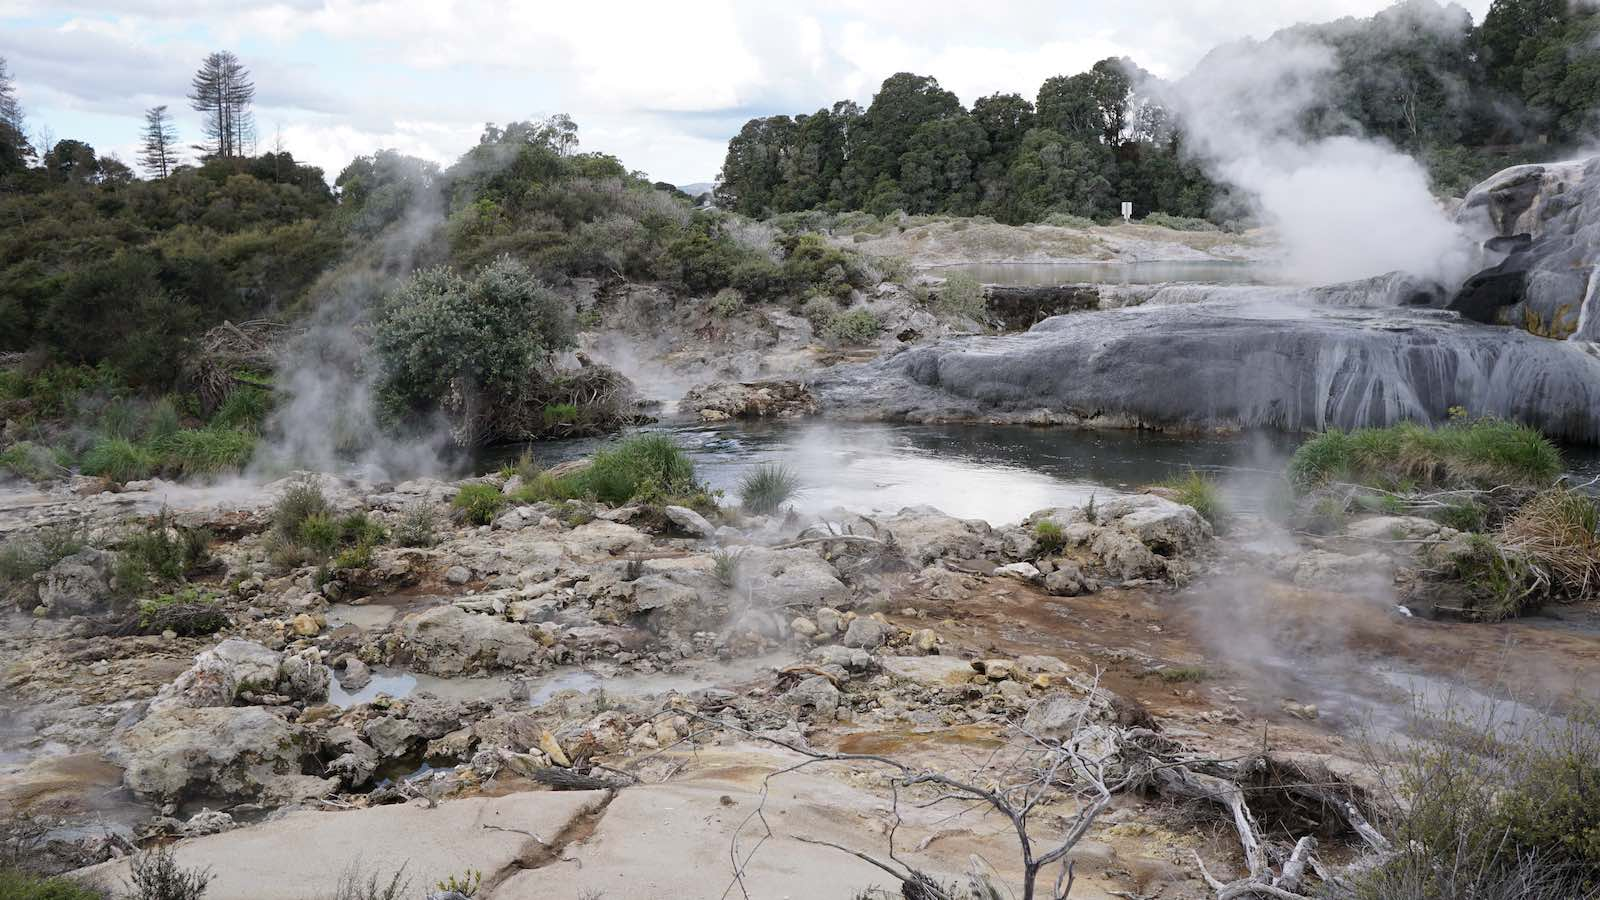 There was a park in Rotorua there called Te Puia which had a ton of hotspots like this